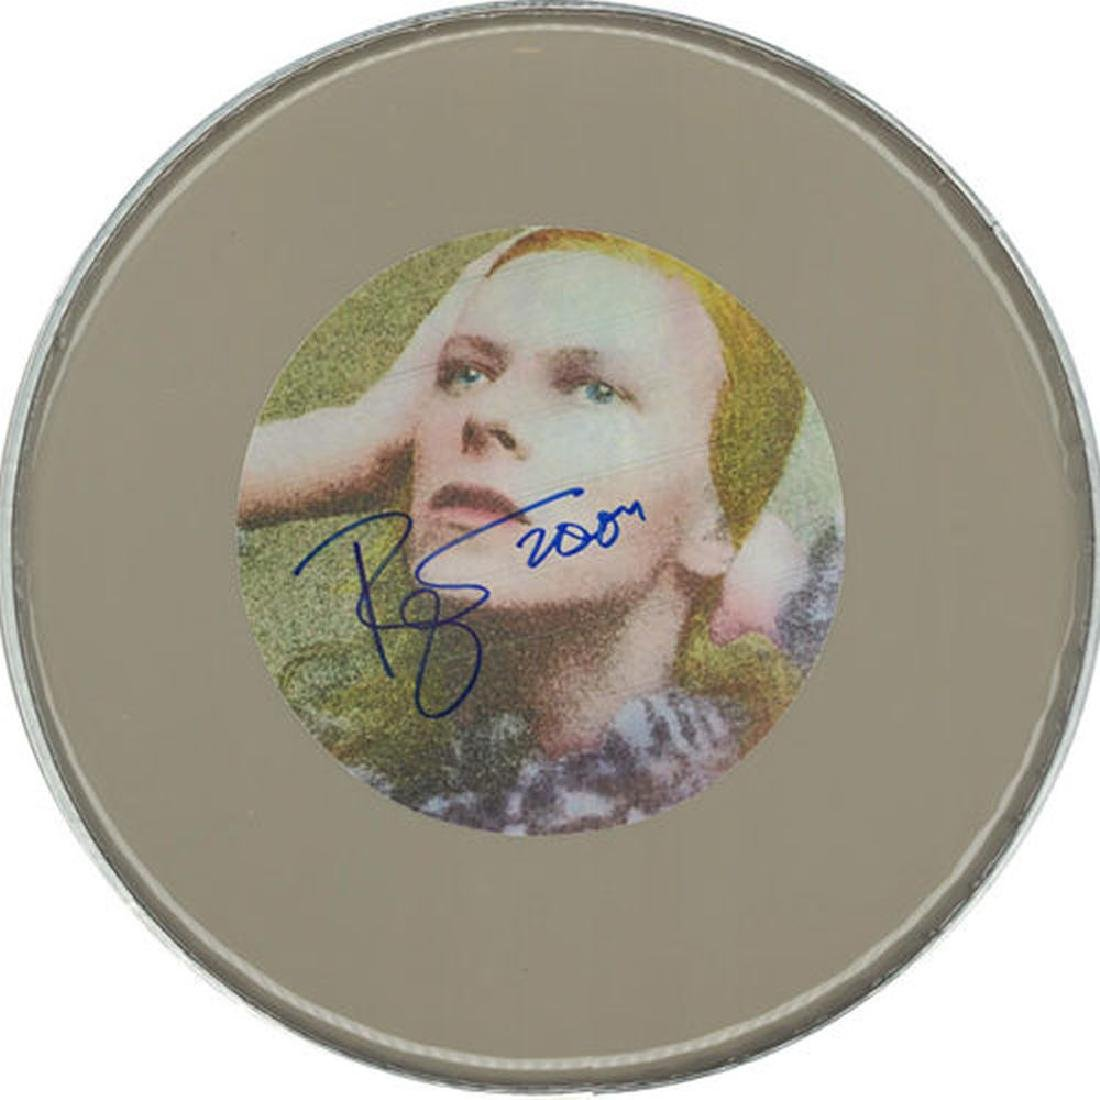 David Bowie '04 Signed Drum Head